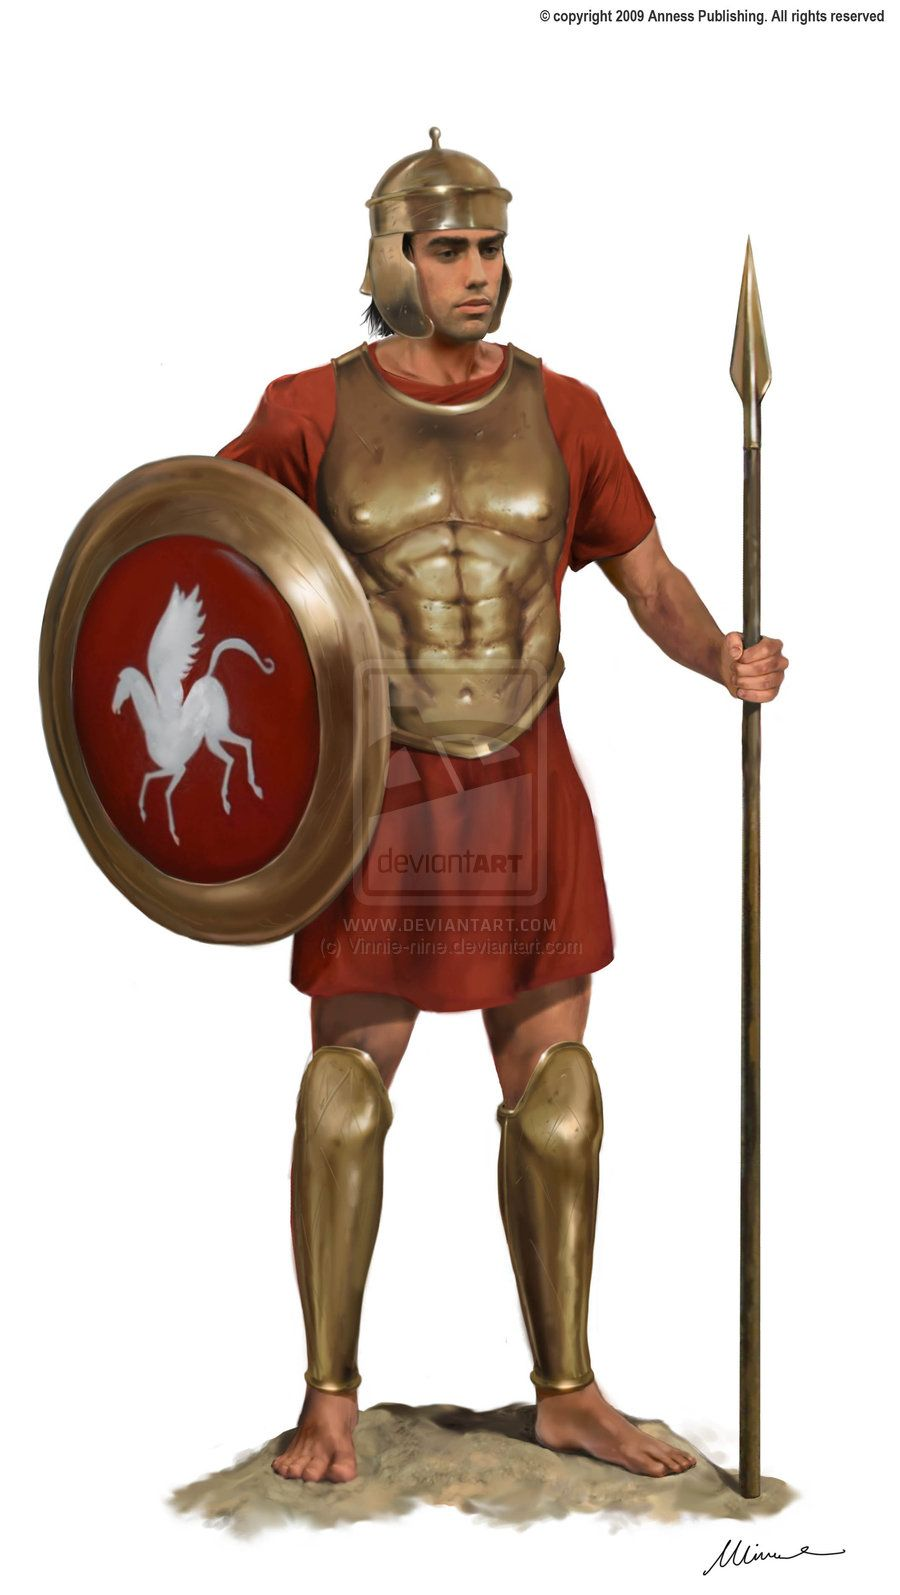 Roman Legionary Weapons, Armor and Clothing